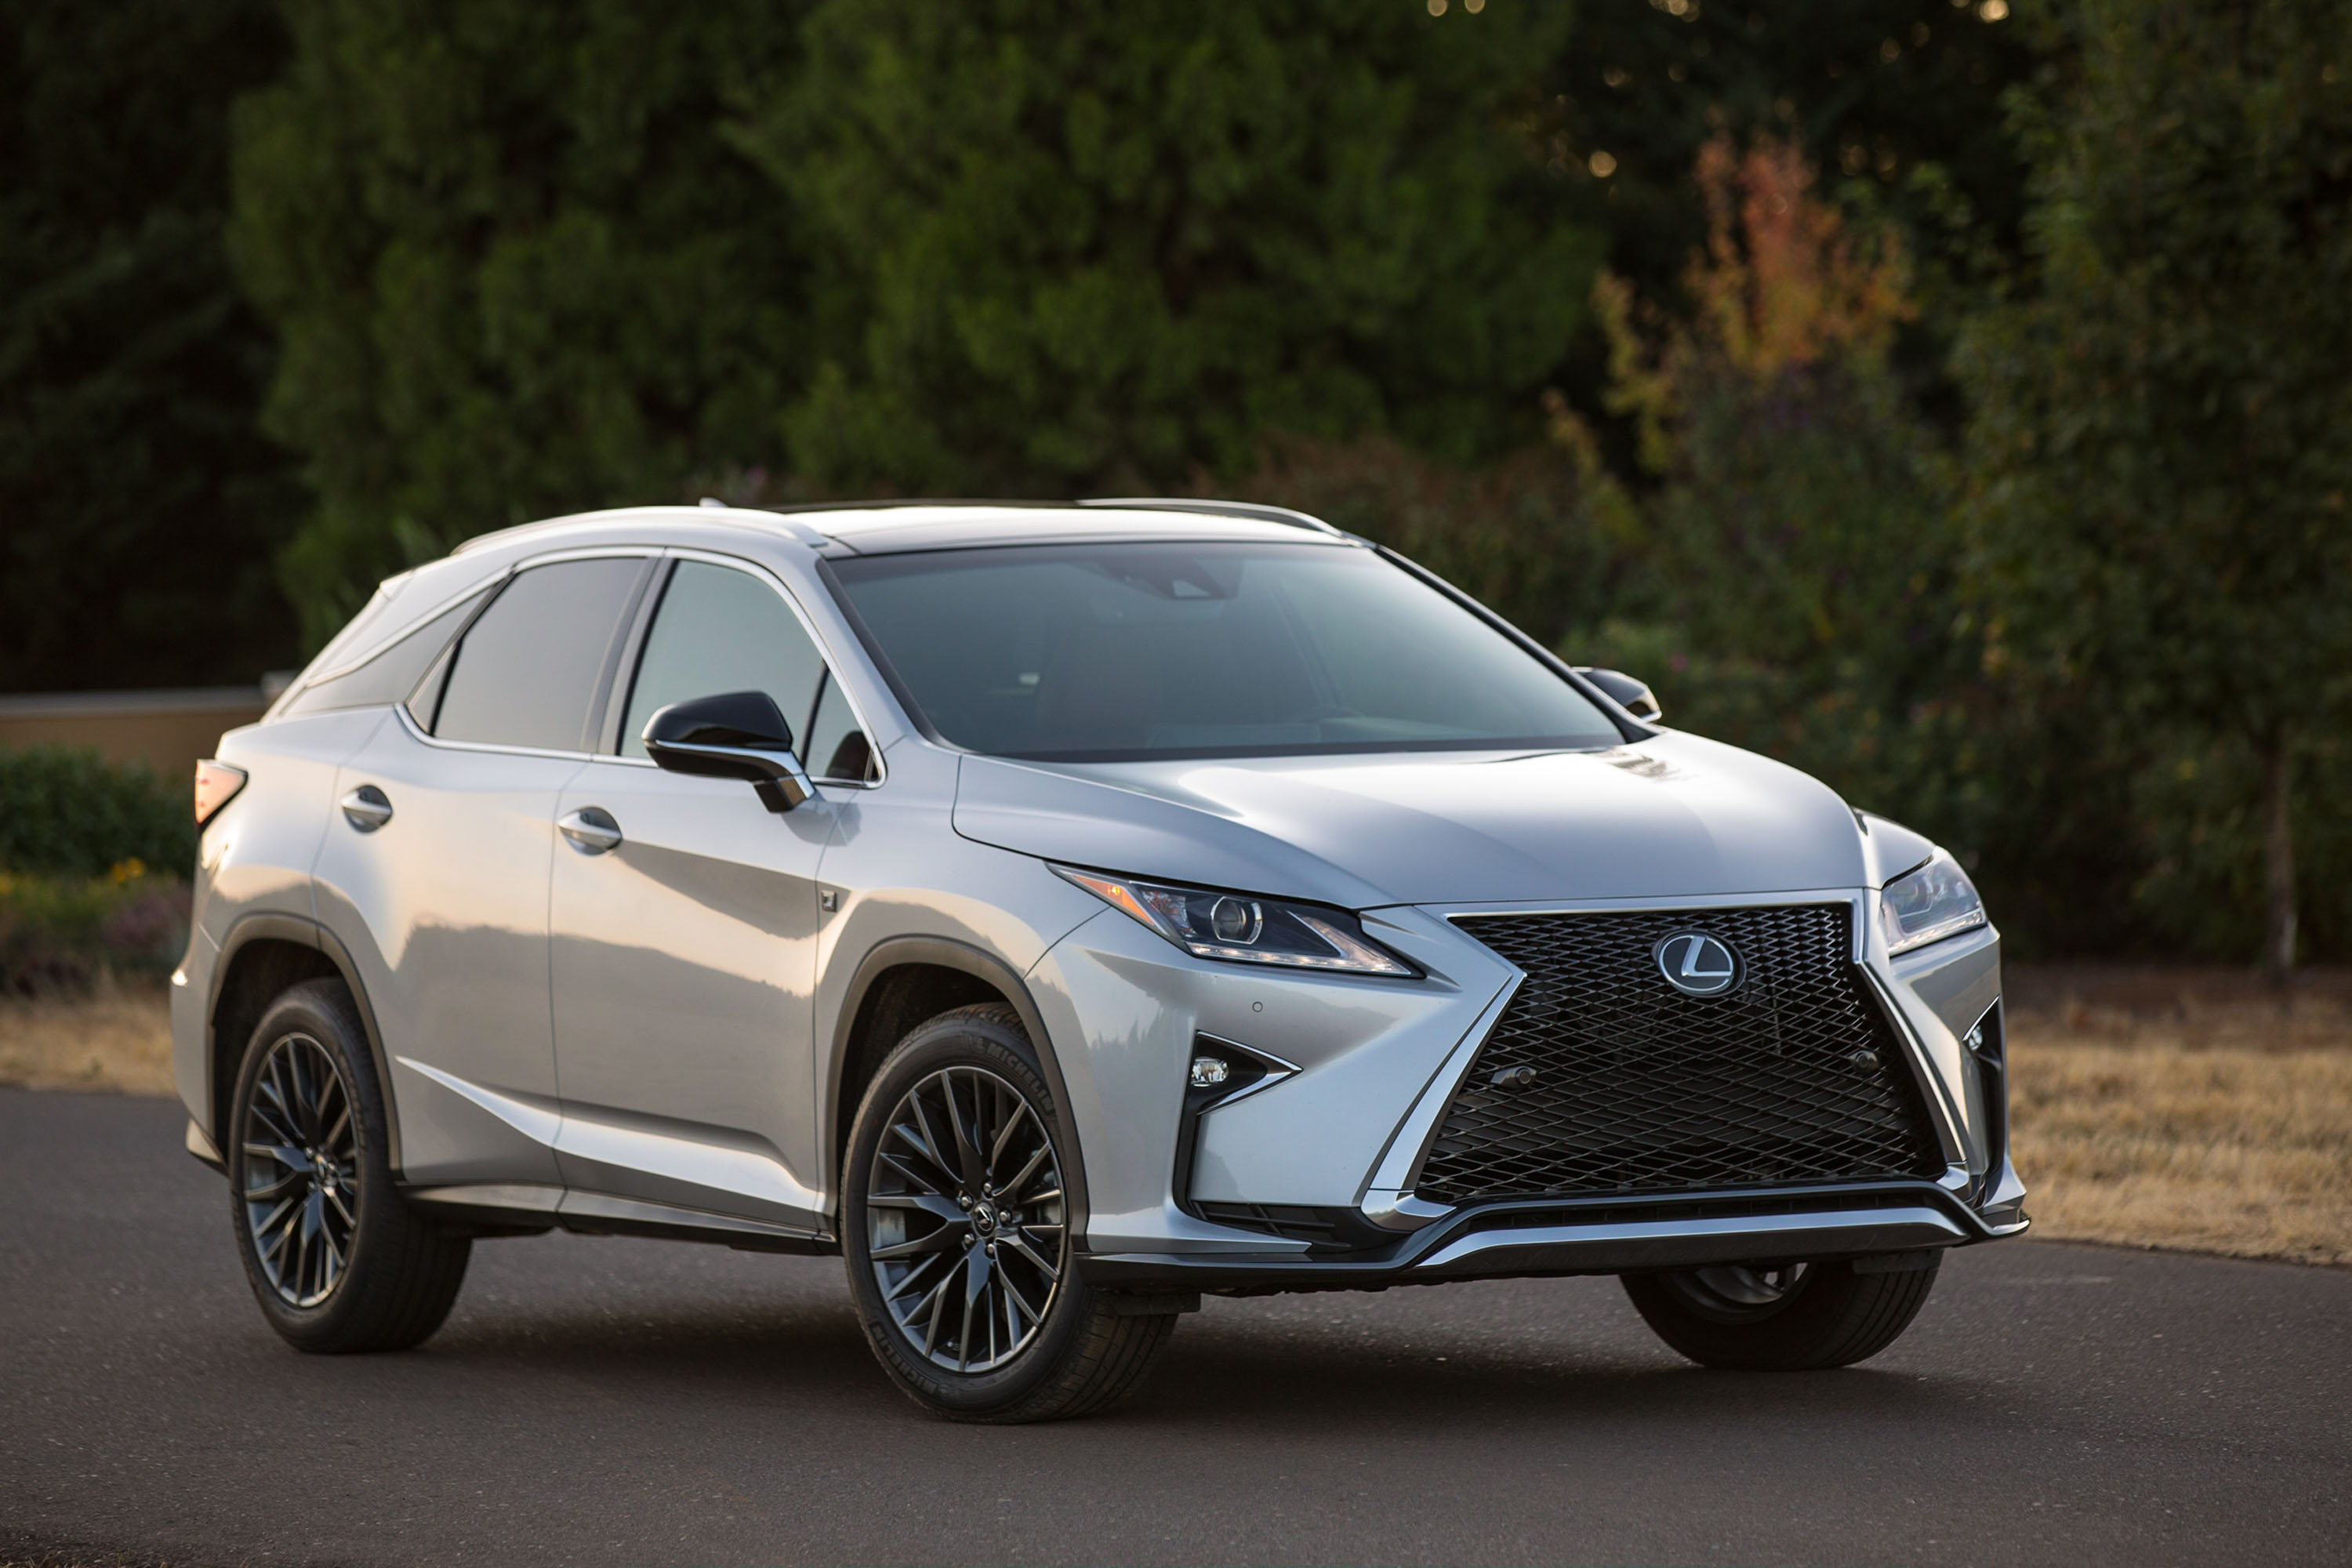 New And Used Lexus Rx 350 Prices Photos Reviews Specs The Car Connection